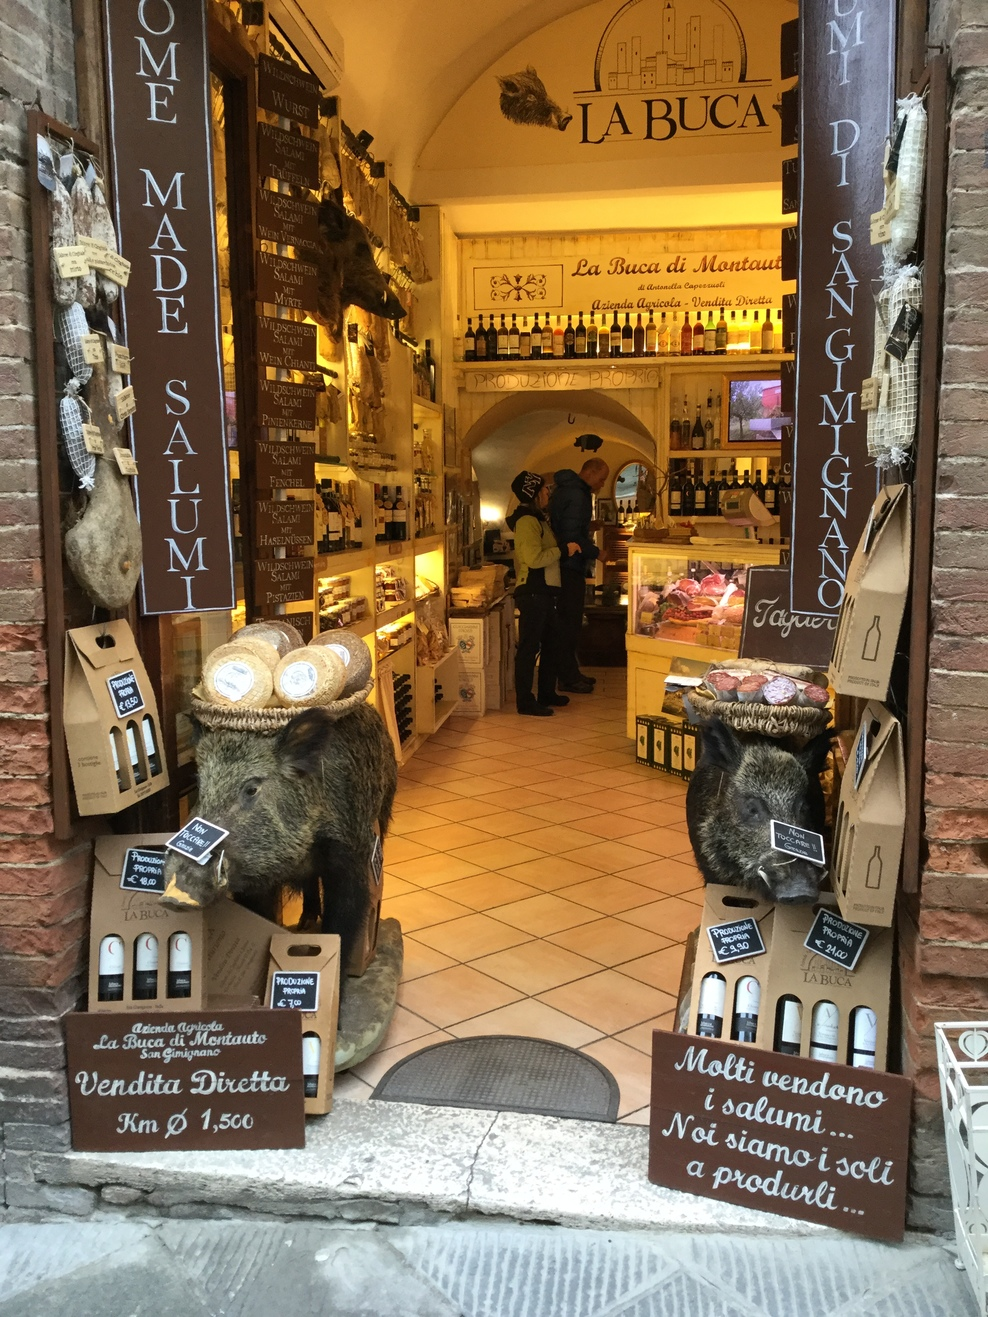 Butcher shop in Siena, Italy.